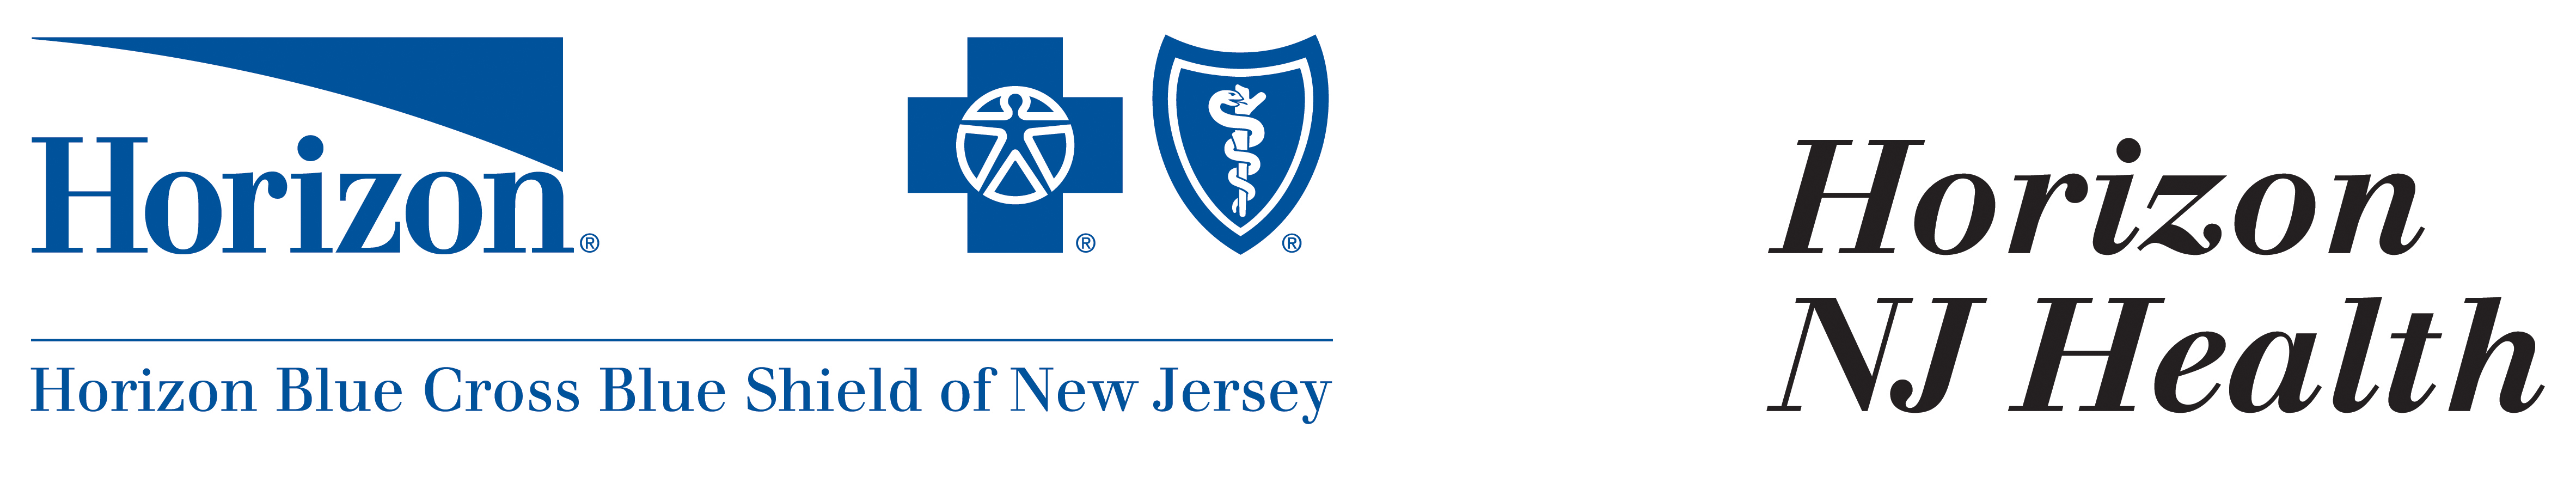 Jewish Renaissance Medical Center : ABOUT US : Our Partners